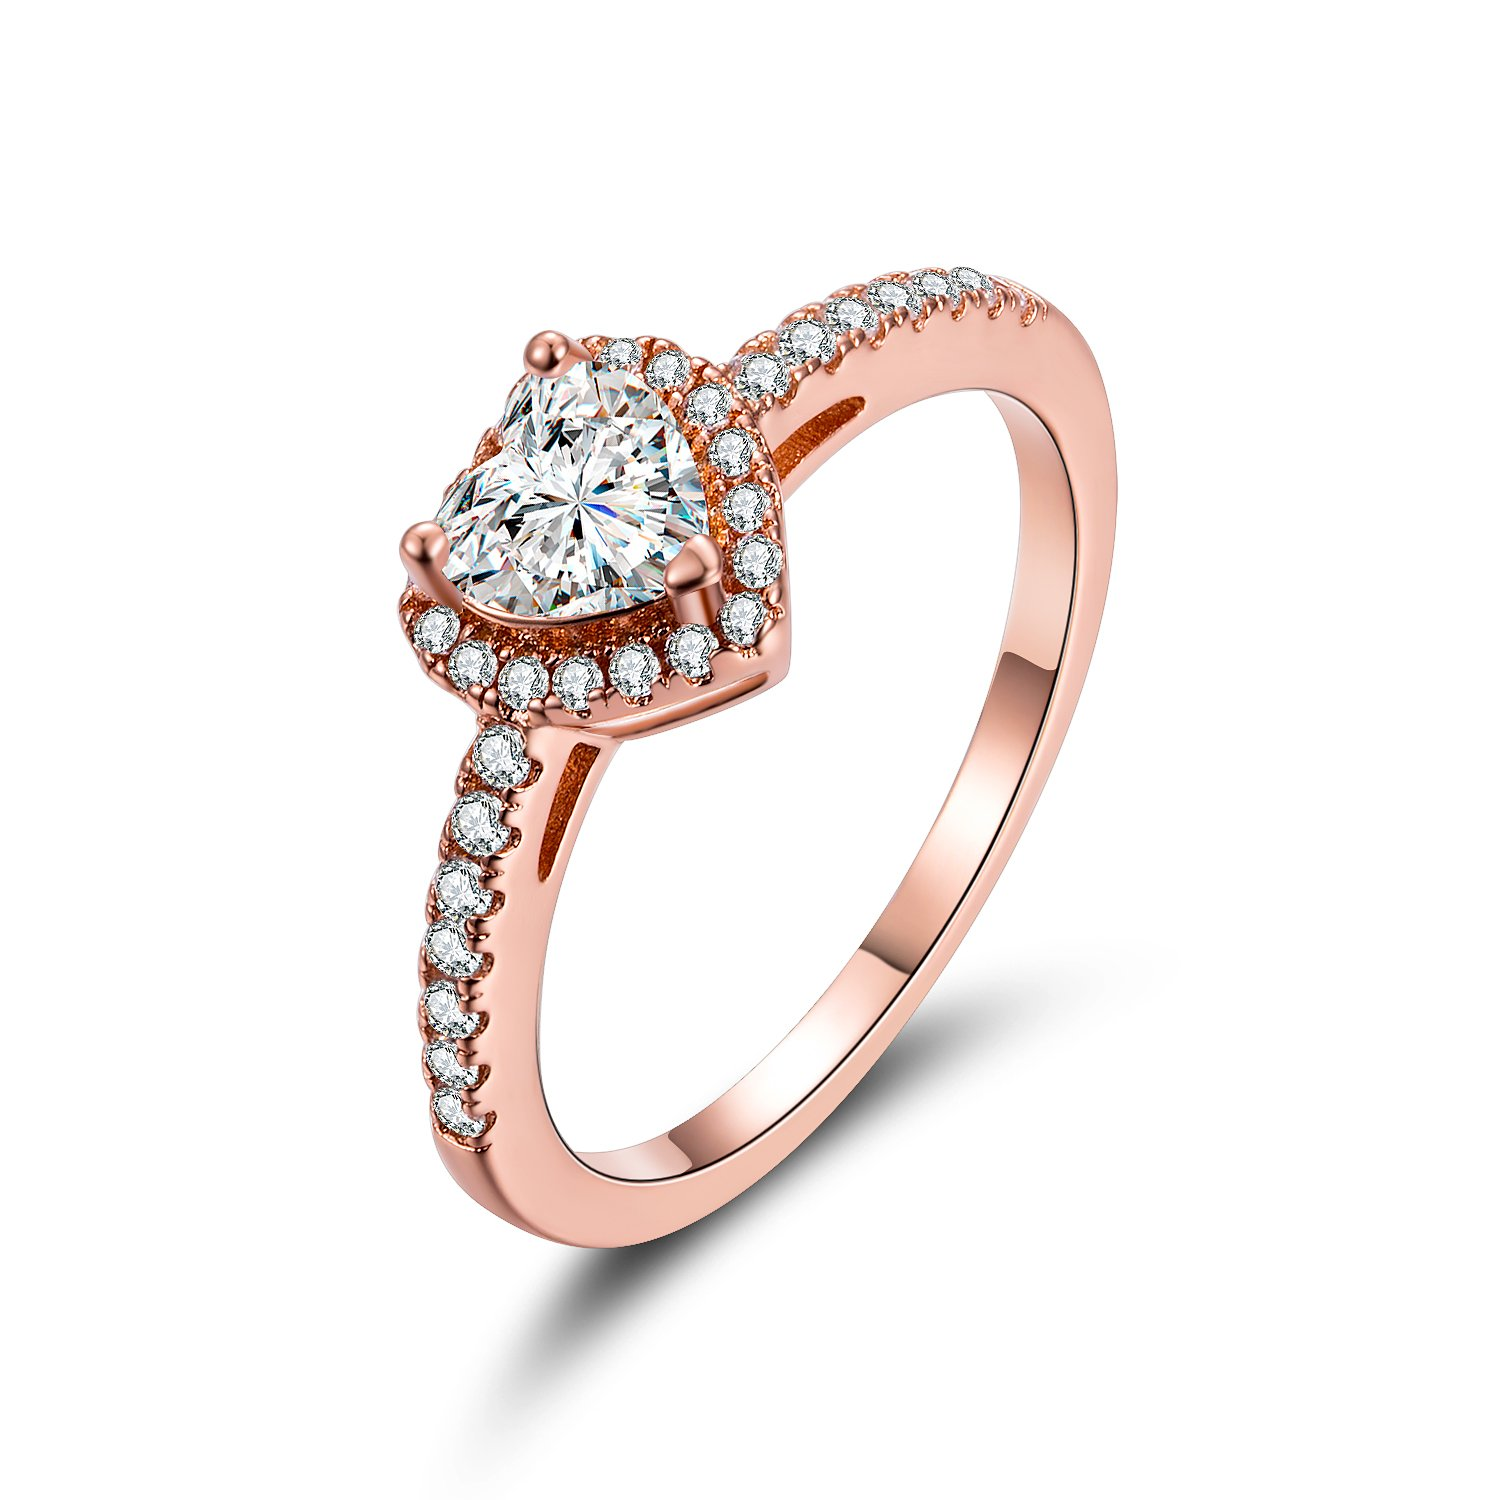 MDFUN Luxurious Rose Gold Plated Cubic Zirconia Infinity Love Solitaire Promise Eternity Ring RRC410